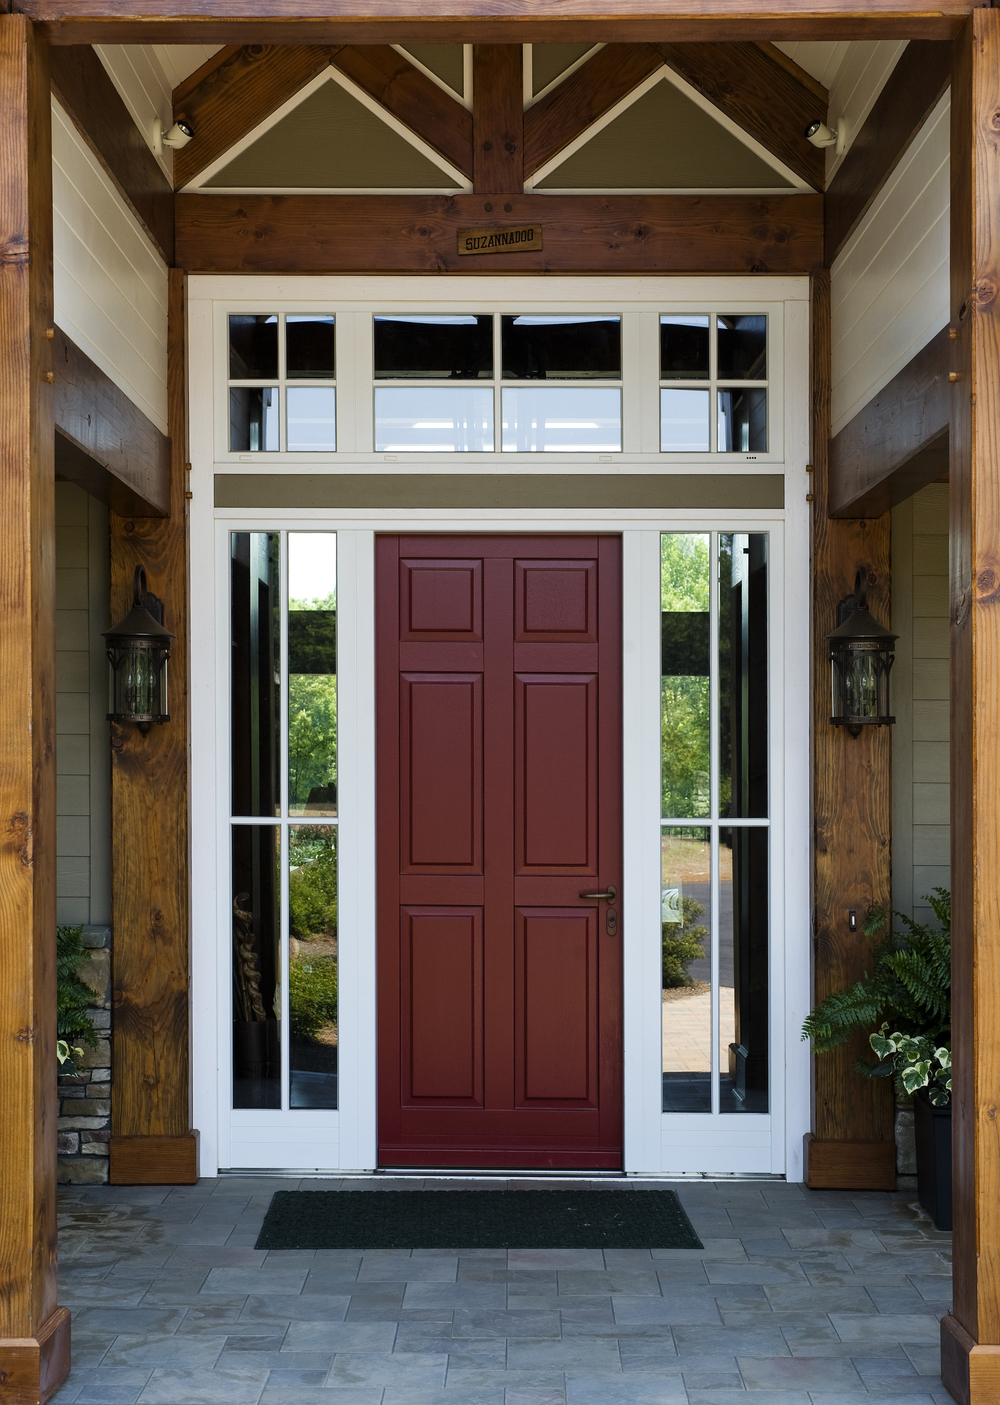 Aluminum Clad Mahogany Entry Door with Sidelights and Transom